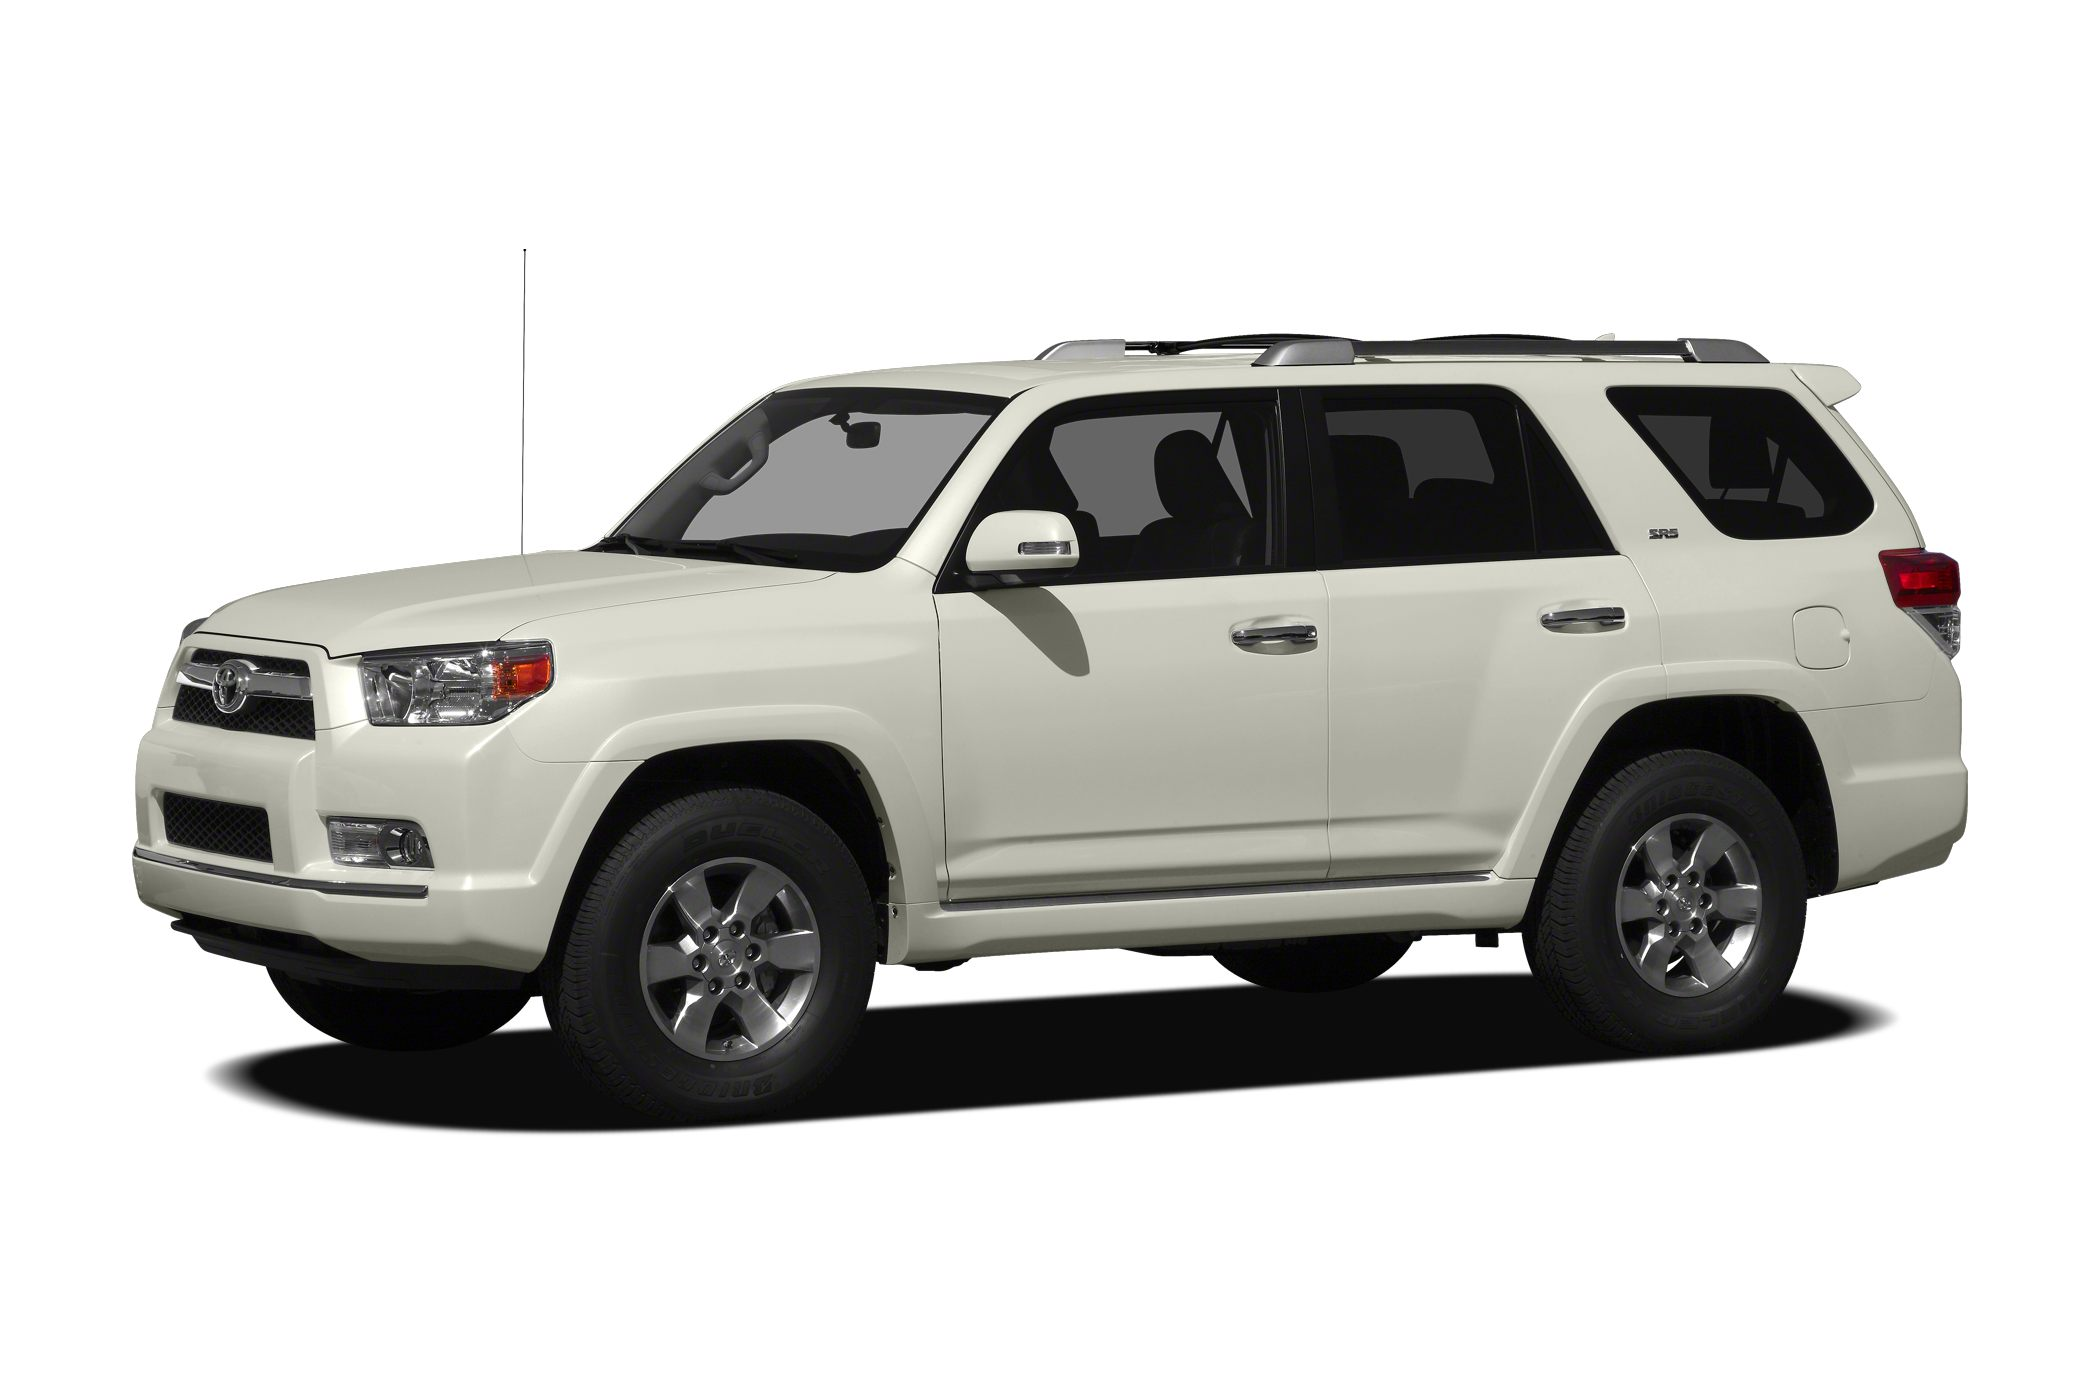 2010 Toyota 4Runner Limited CARFAX 1-Owner LOW MILES - 46912 Sunroof NAV Heated Leather Seats